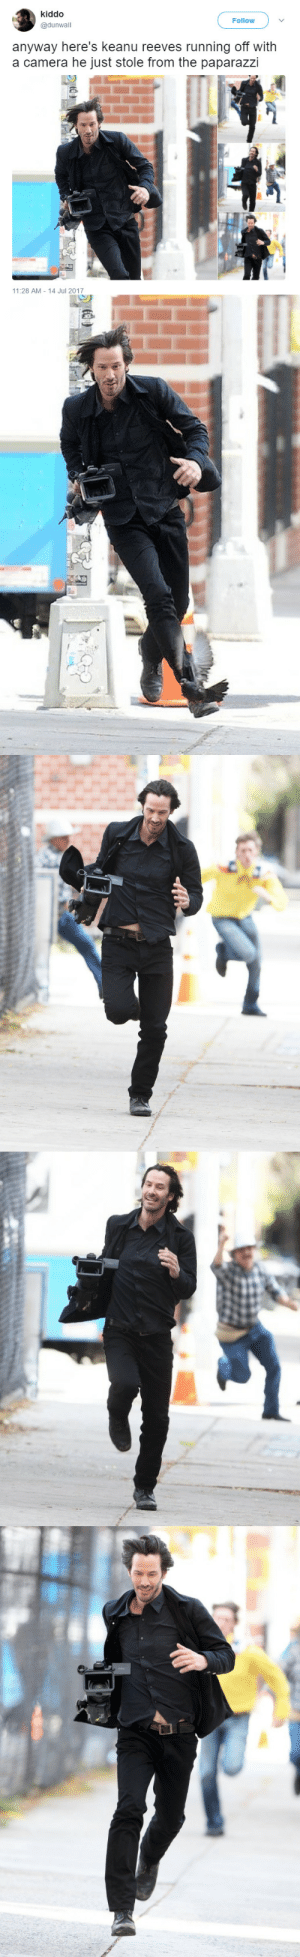 thefingerfuckingfemalefury:  zeetumb: thefingerfuckingfemalefury:   whostolemymonkey:  the-porter-rockwell:   forestwildflower:   thenatsdorf: Keanu Thieves (via mushroombirdornaments)  The people running after him makes it funnier   He looks so happy   The whole post, blessed.  RUN HOME KEANU! AND DON'T STOP FOR ANYTHING!   Lol  IT'S HIS NOW :D: kiddo  @dunwall  Follow  anyway here's keanu reeves running off with  a camera he just stole from the paparazzi  11:28 AM 14 Jul 2017 thefingerfuckingfemalefury:  zeetumb: thefingerfuckingfemalefury:   whostolemymonkey:  the-porter-rockwell:   forestwildflower:   thenatsdorf: Keanu Thieves (via mushroombirdornaments)  The people running after him makes it funnier   He looks so happy   The whole post, blessed.  RUN HOME KEANU! AND DON'T STOP FOR ANYTHING!   Lol  IT'S HIS NOW :D